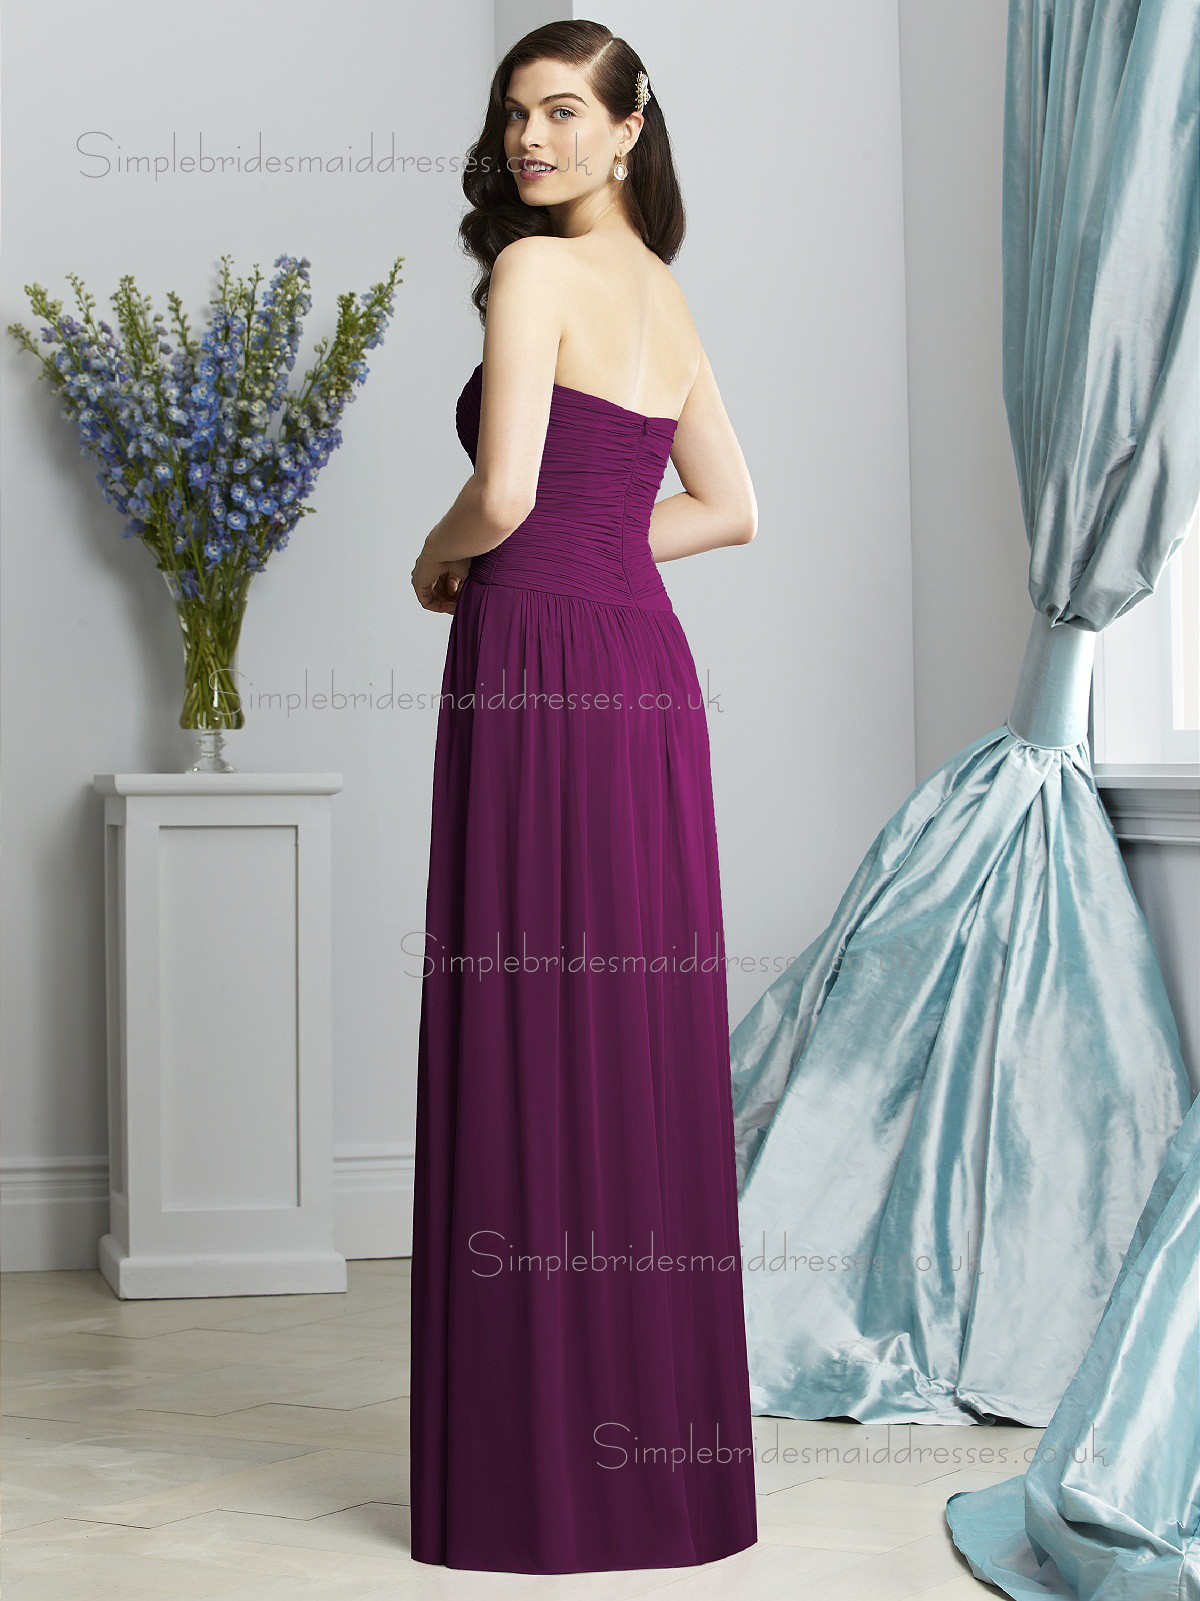 100 bridesmaid dresses deep purple 794 bridesmaid dresses best 10 bridesmaid gowns wild berry purple chiffon draped natural sleeveless floor length ombrellifo Images